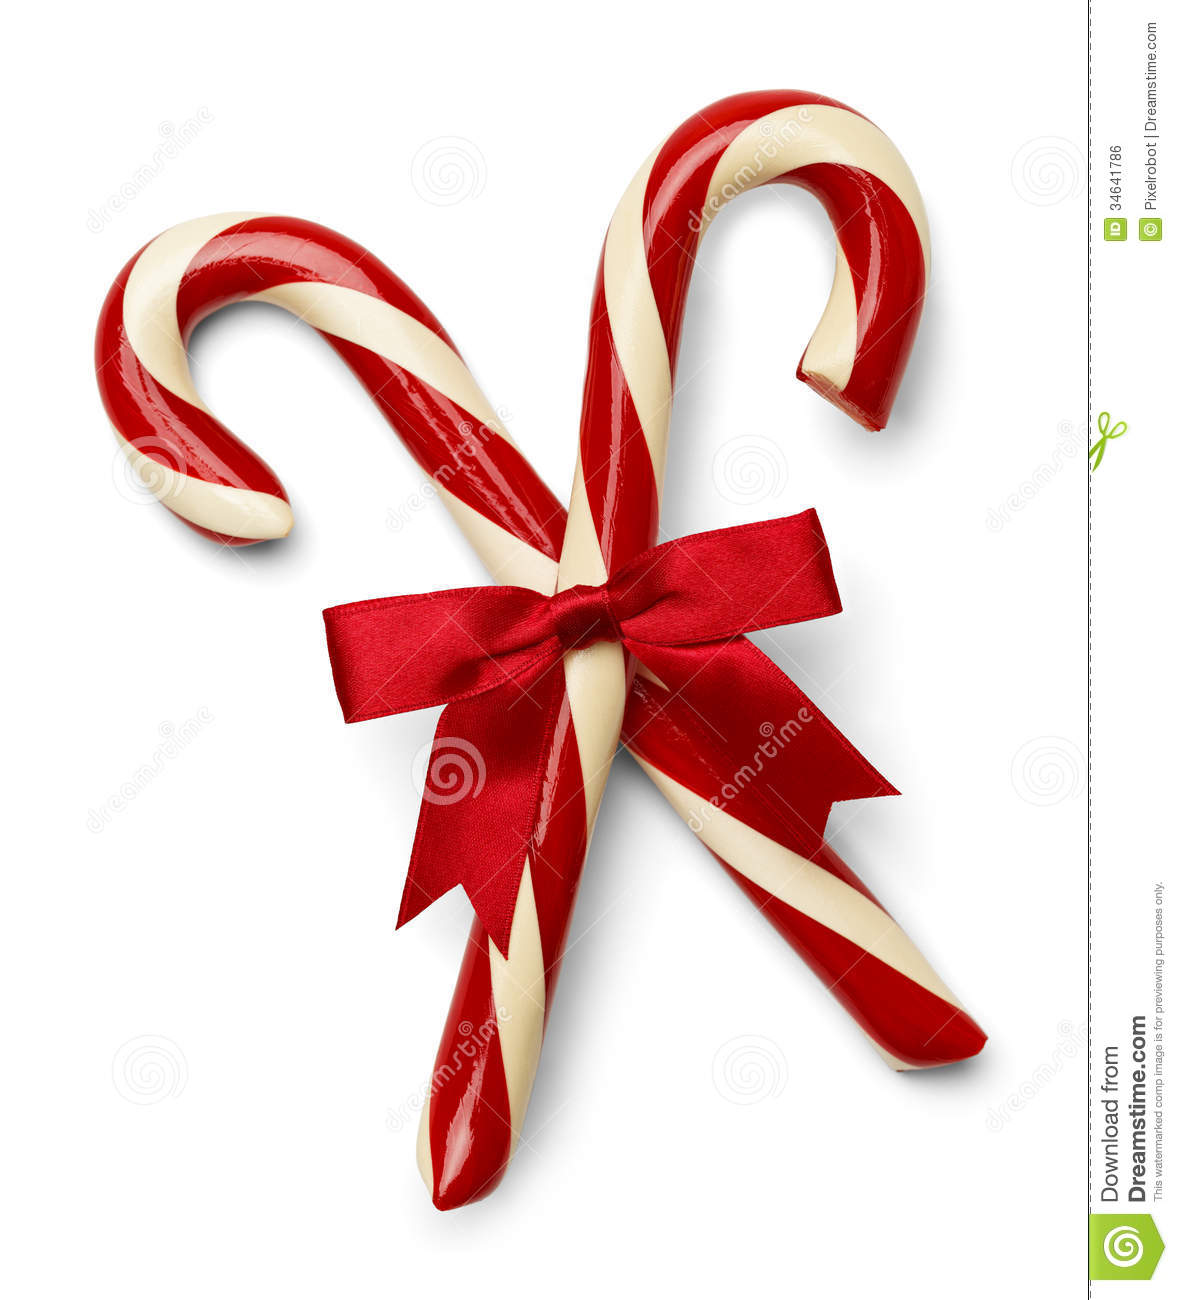 Candy Cane Cross stock photo Image of single decoration 34641786